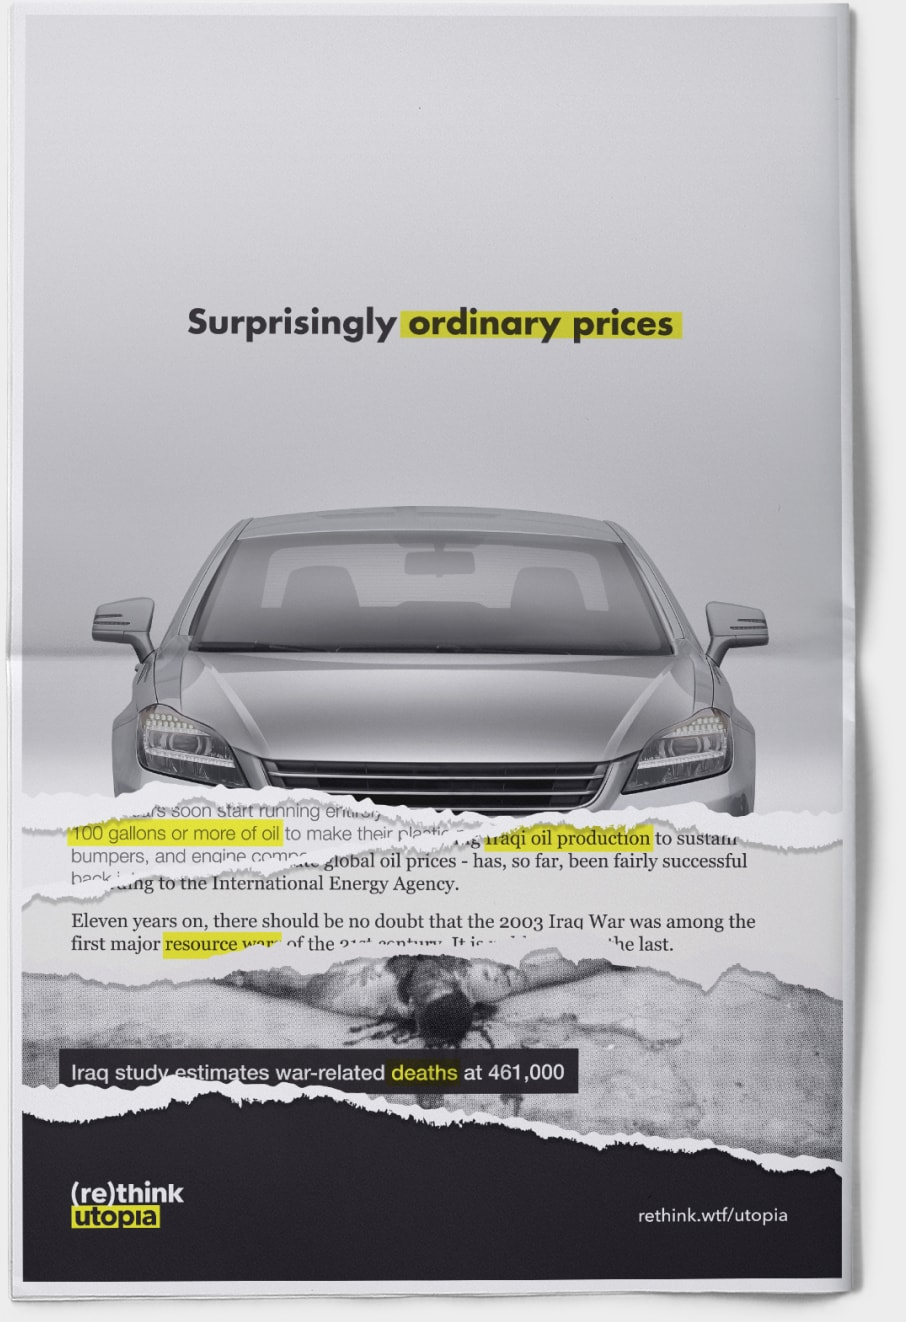 Print mockup of car ad, torn to reveal layers of information about true cost.